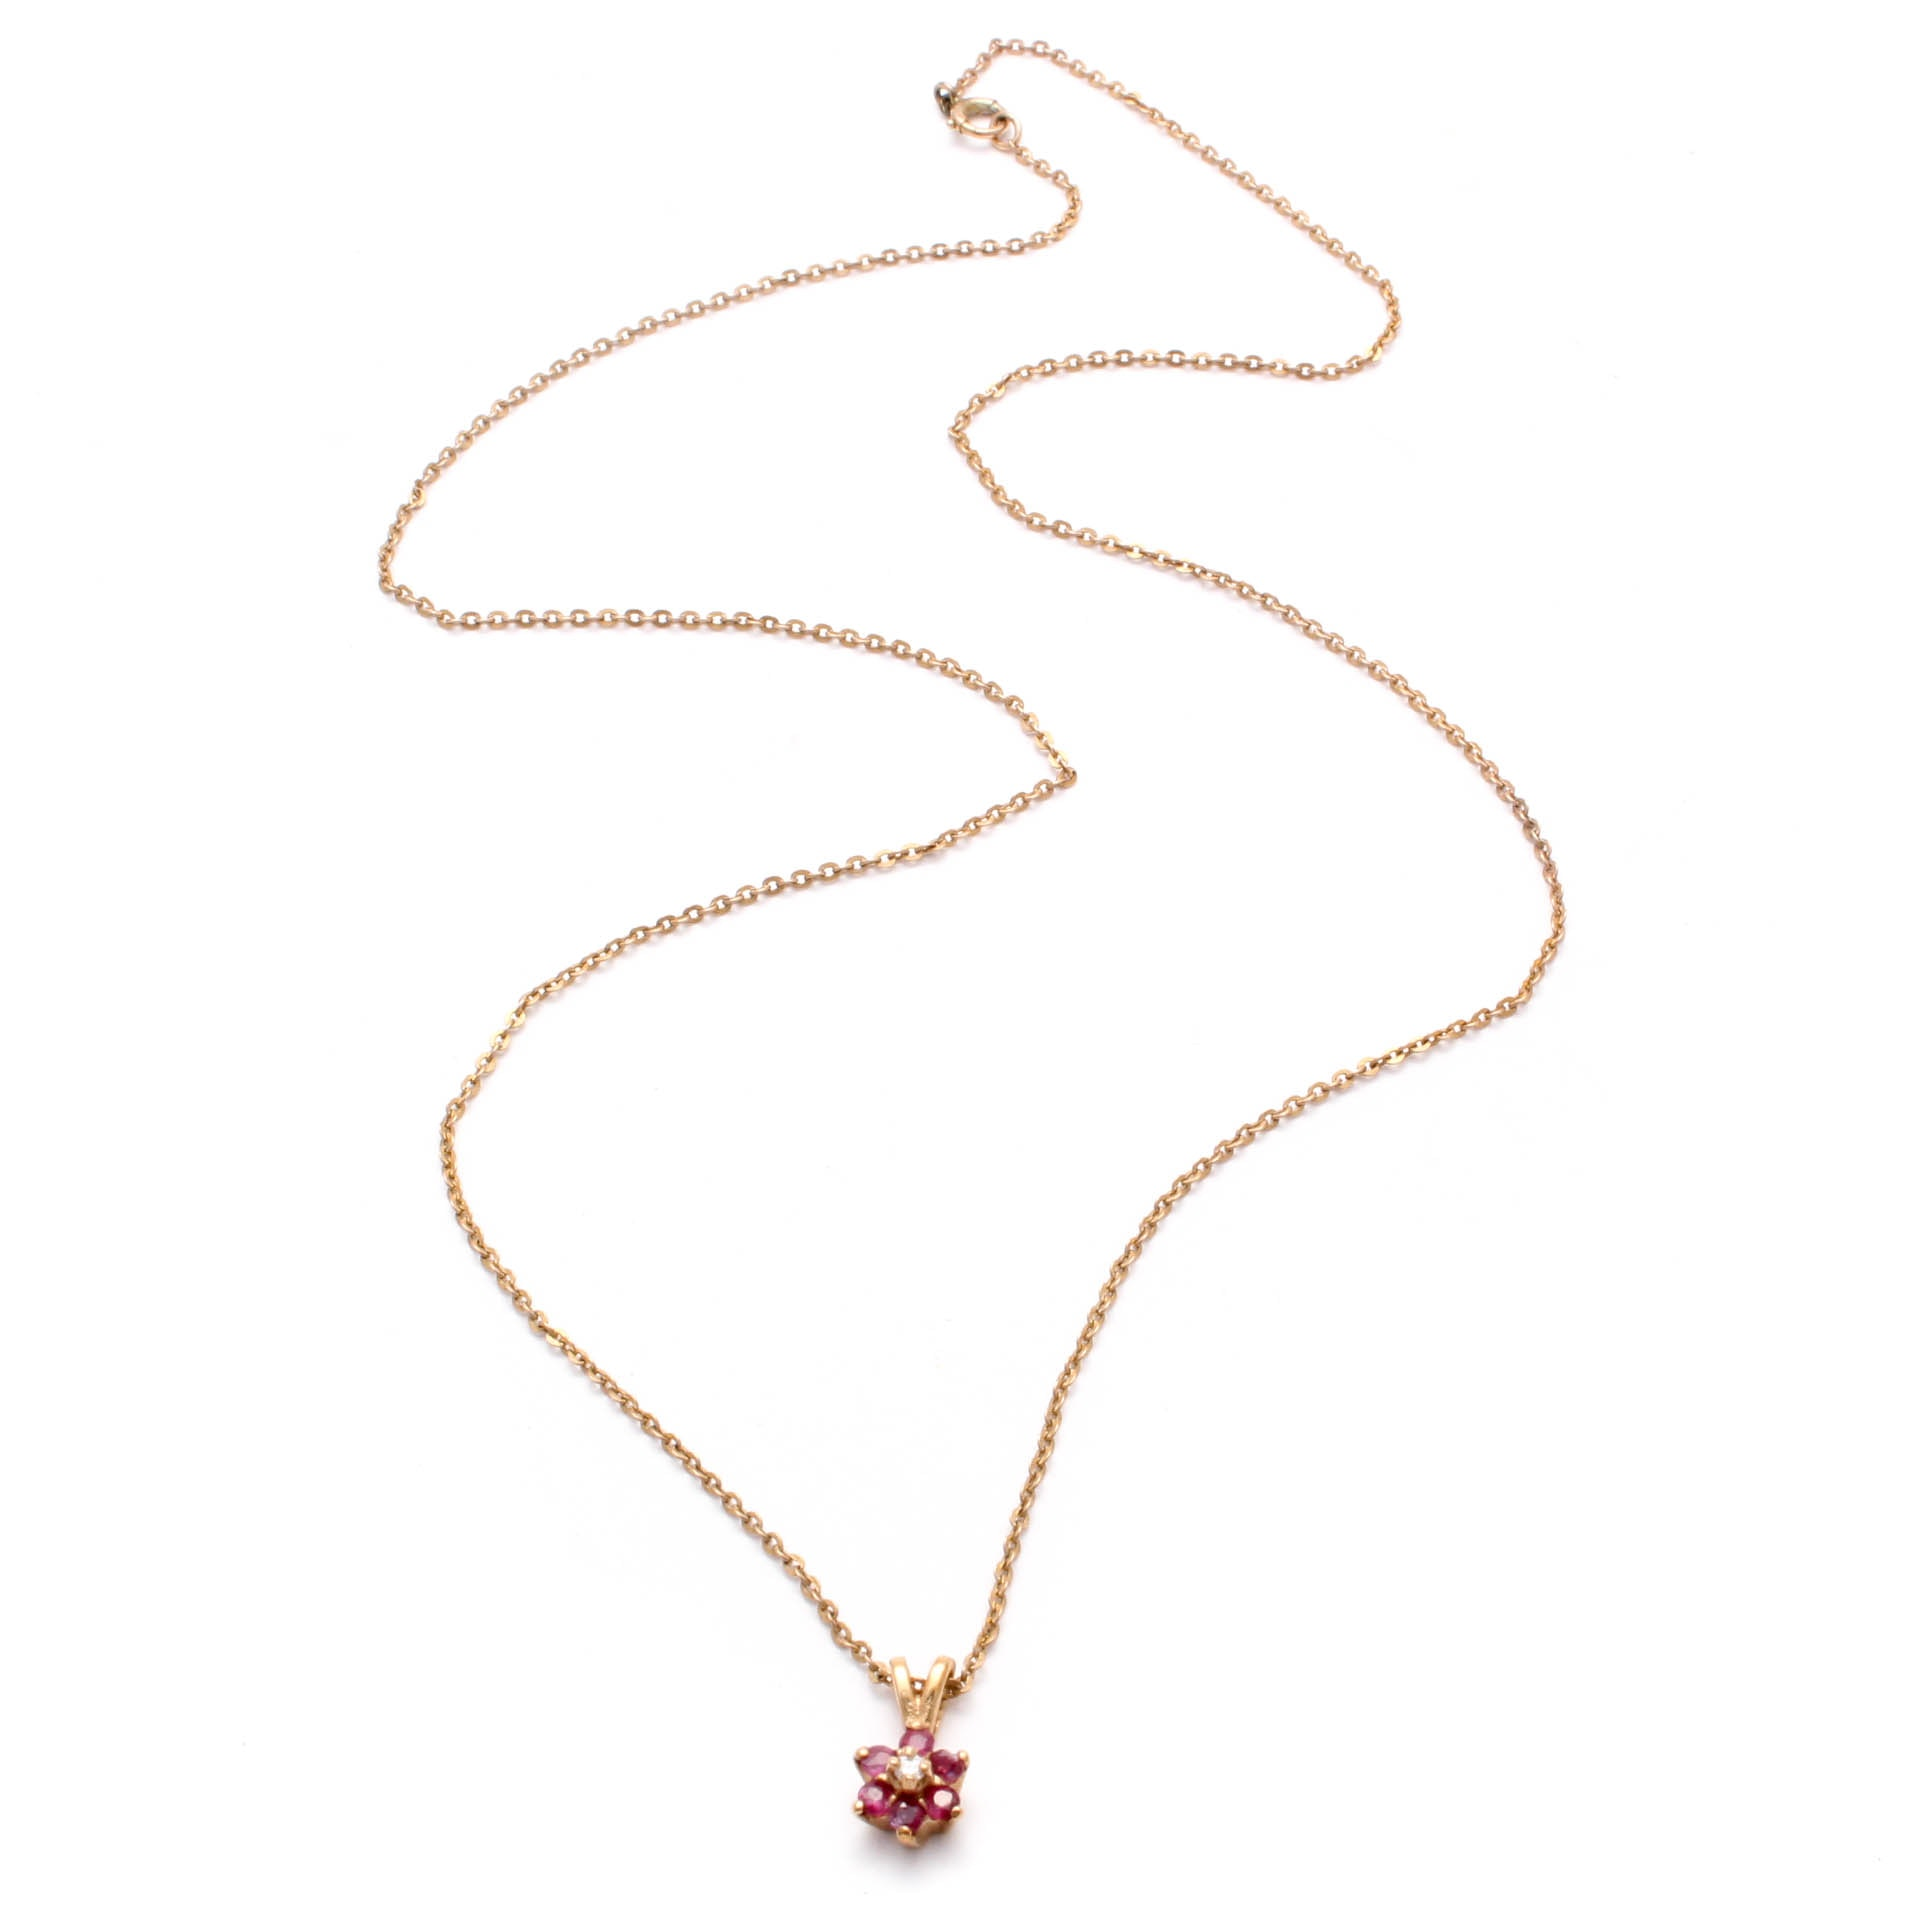 10K Yellow Gold Ruby and Diamond Pendant Necklace